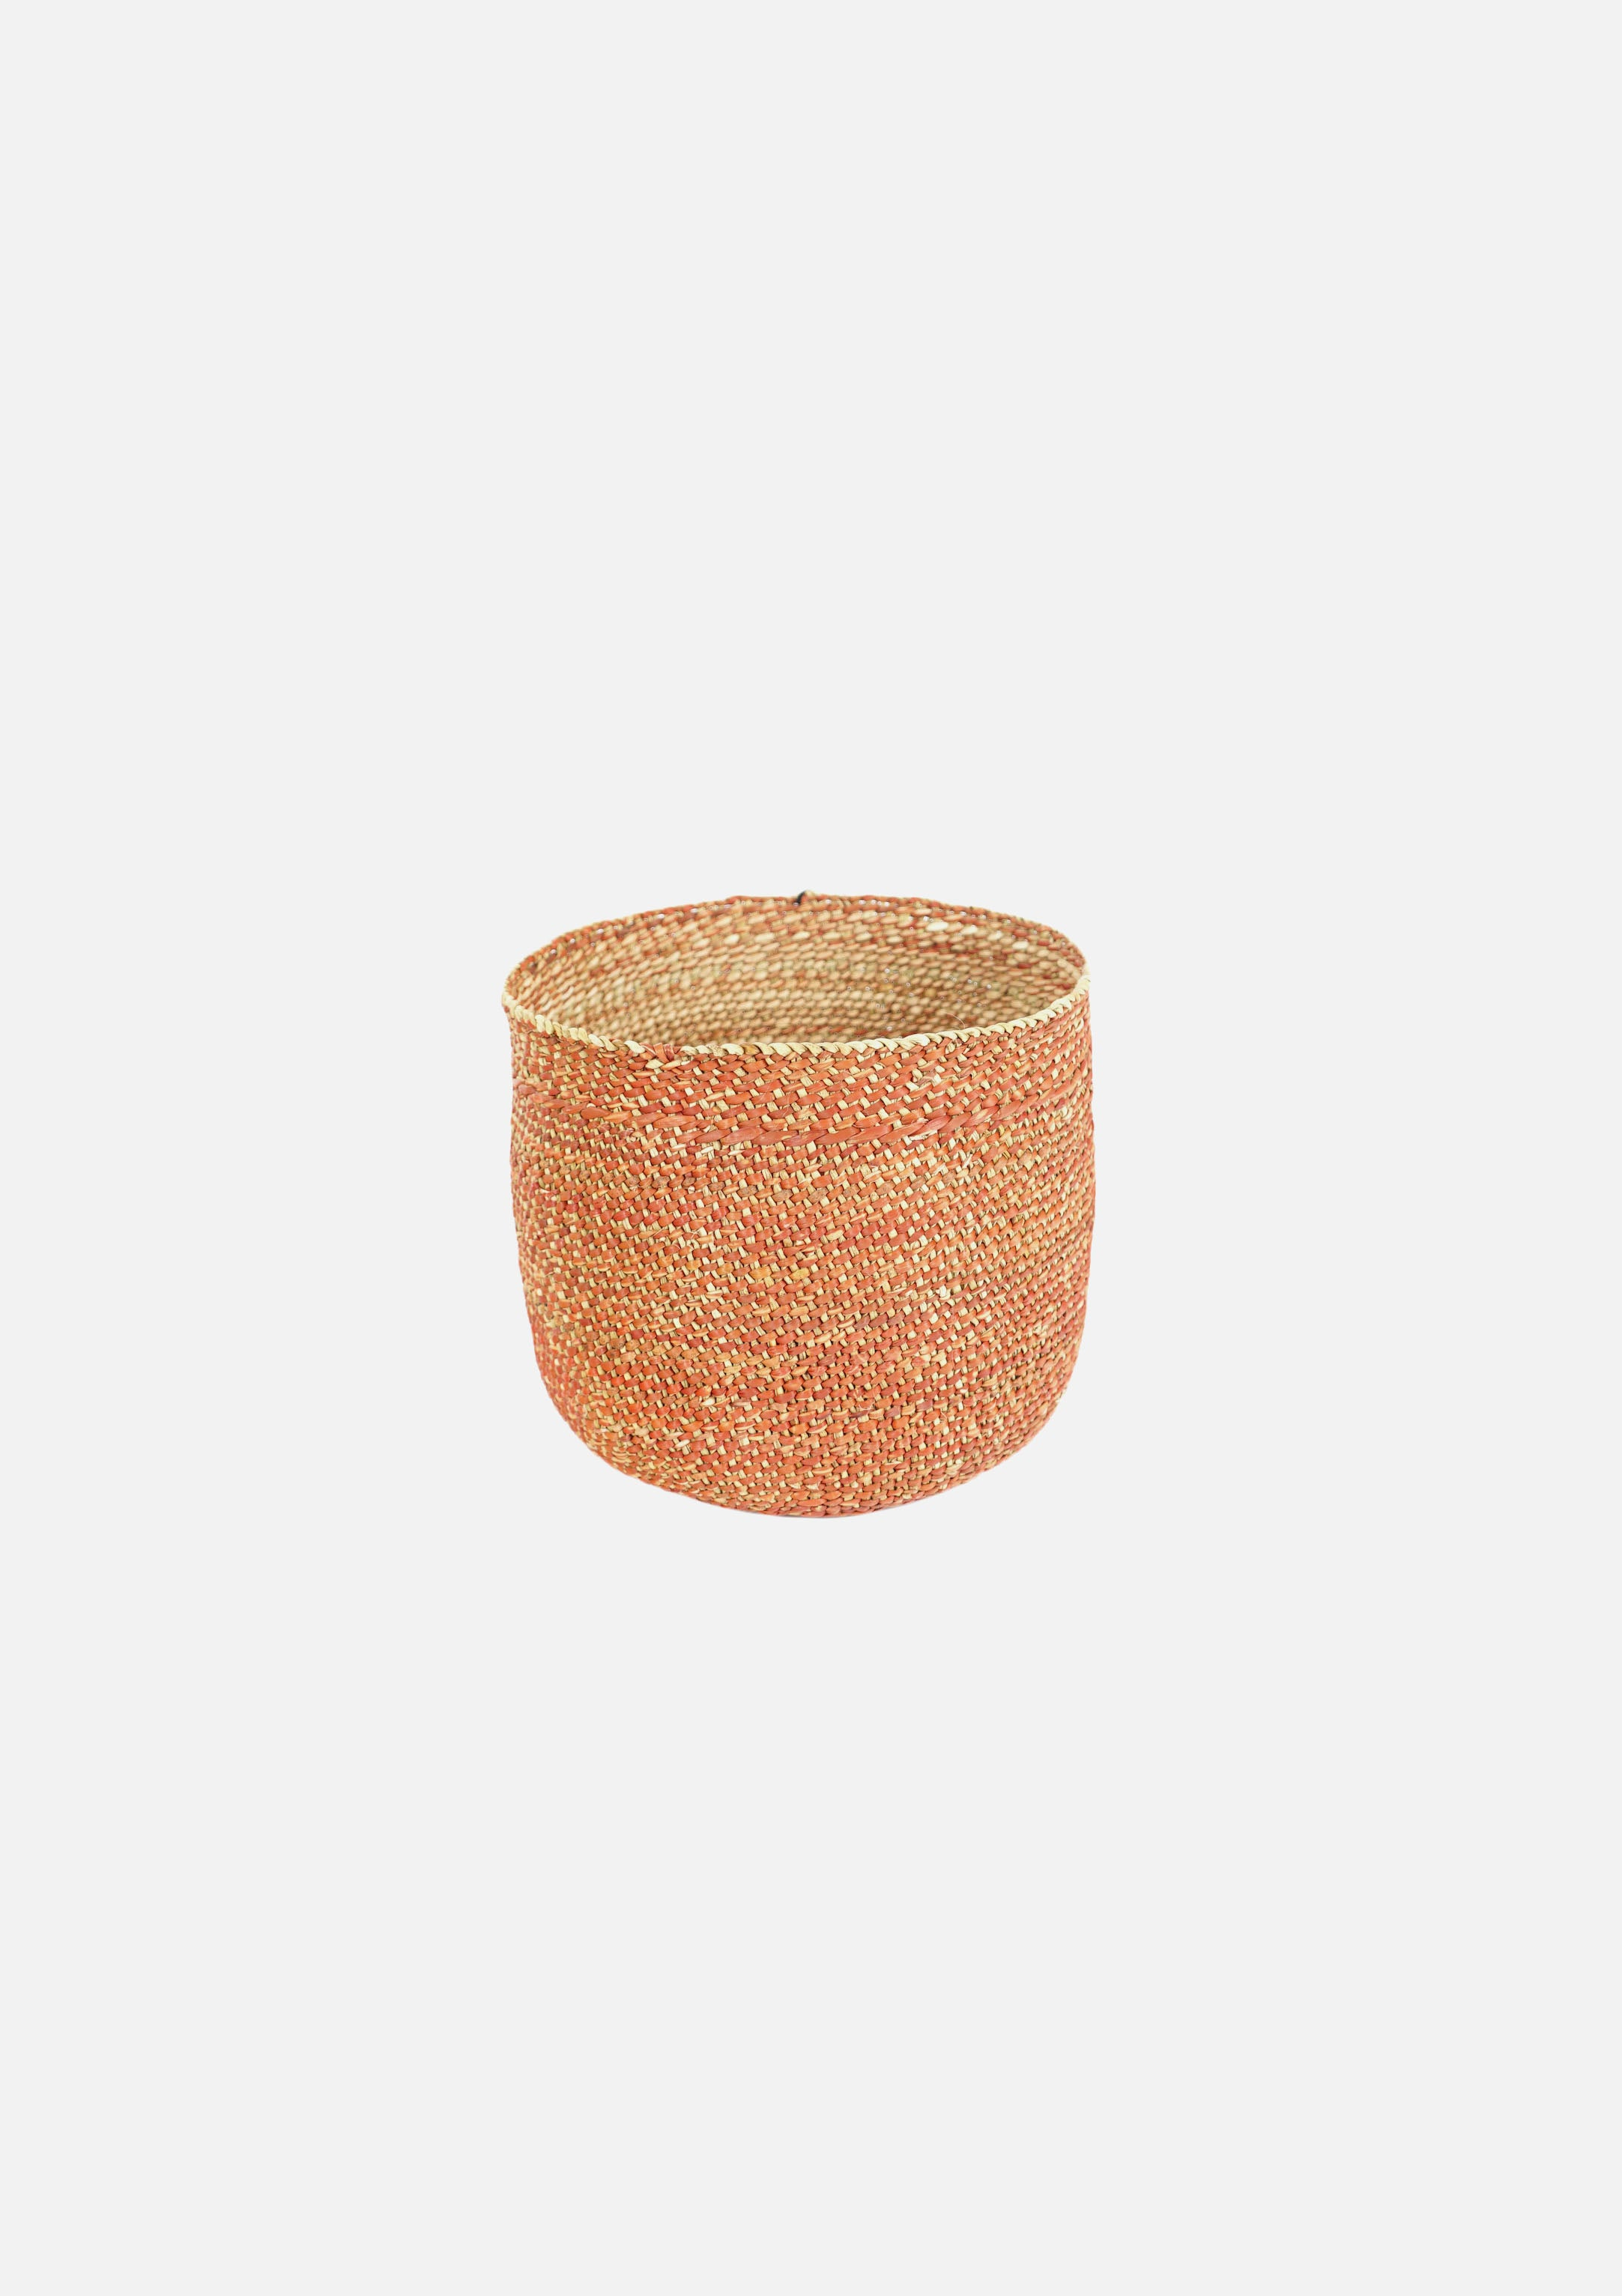 Iringa Baskets Solid Rust